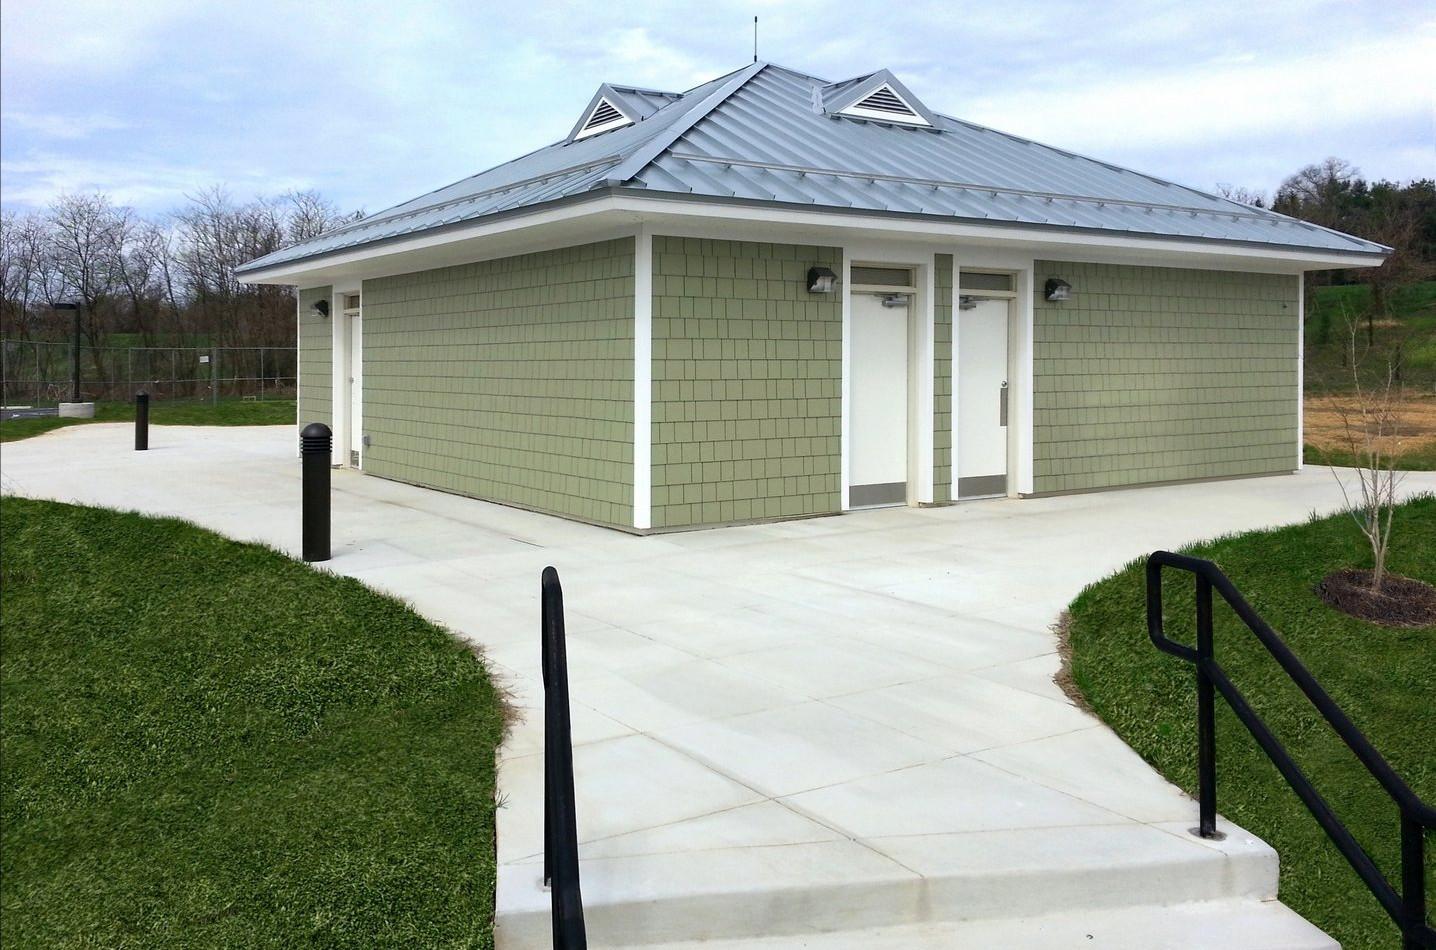 Alpha Ridge Park Comfort Station